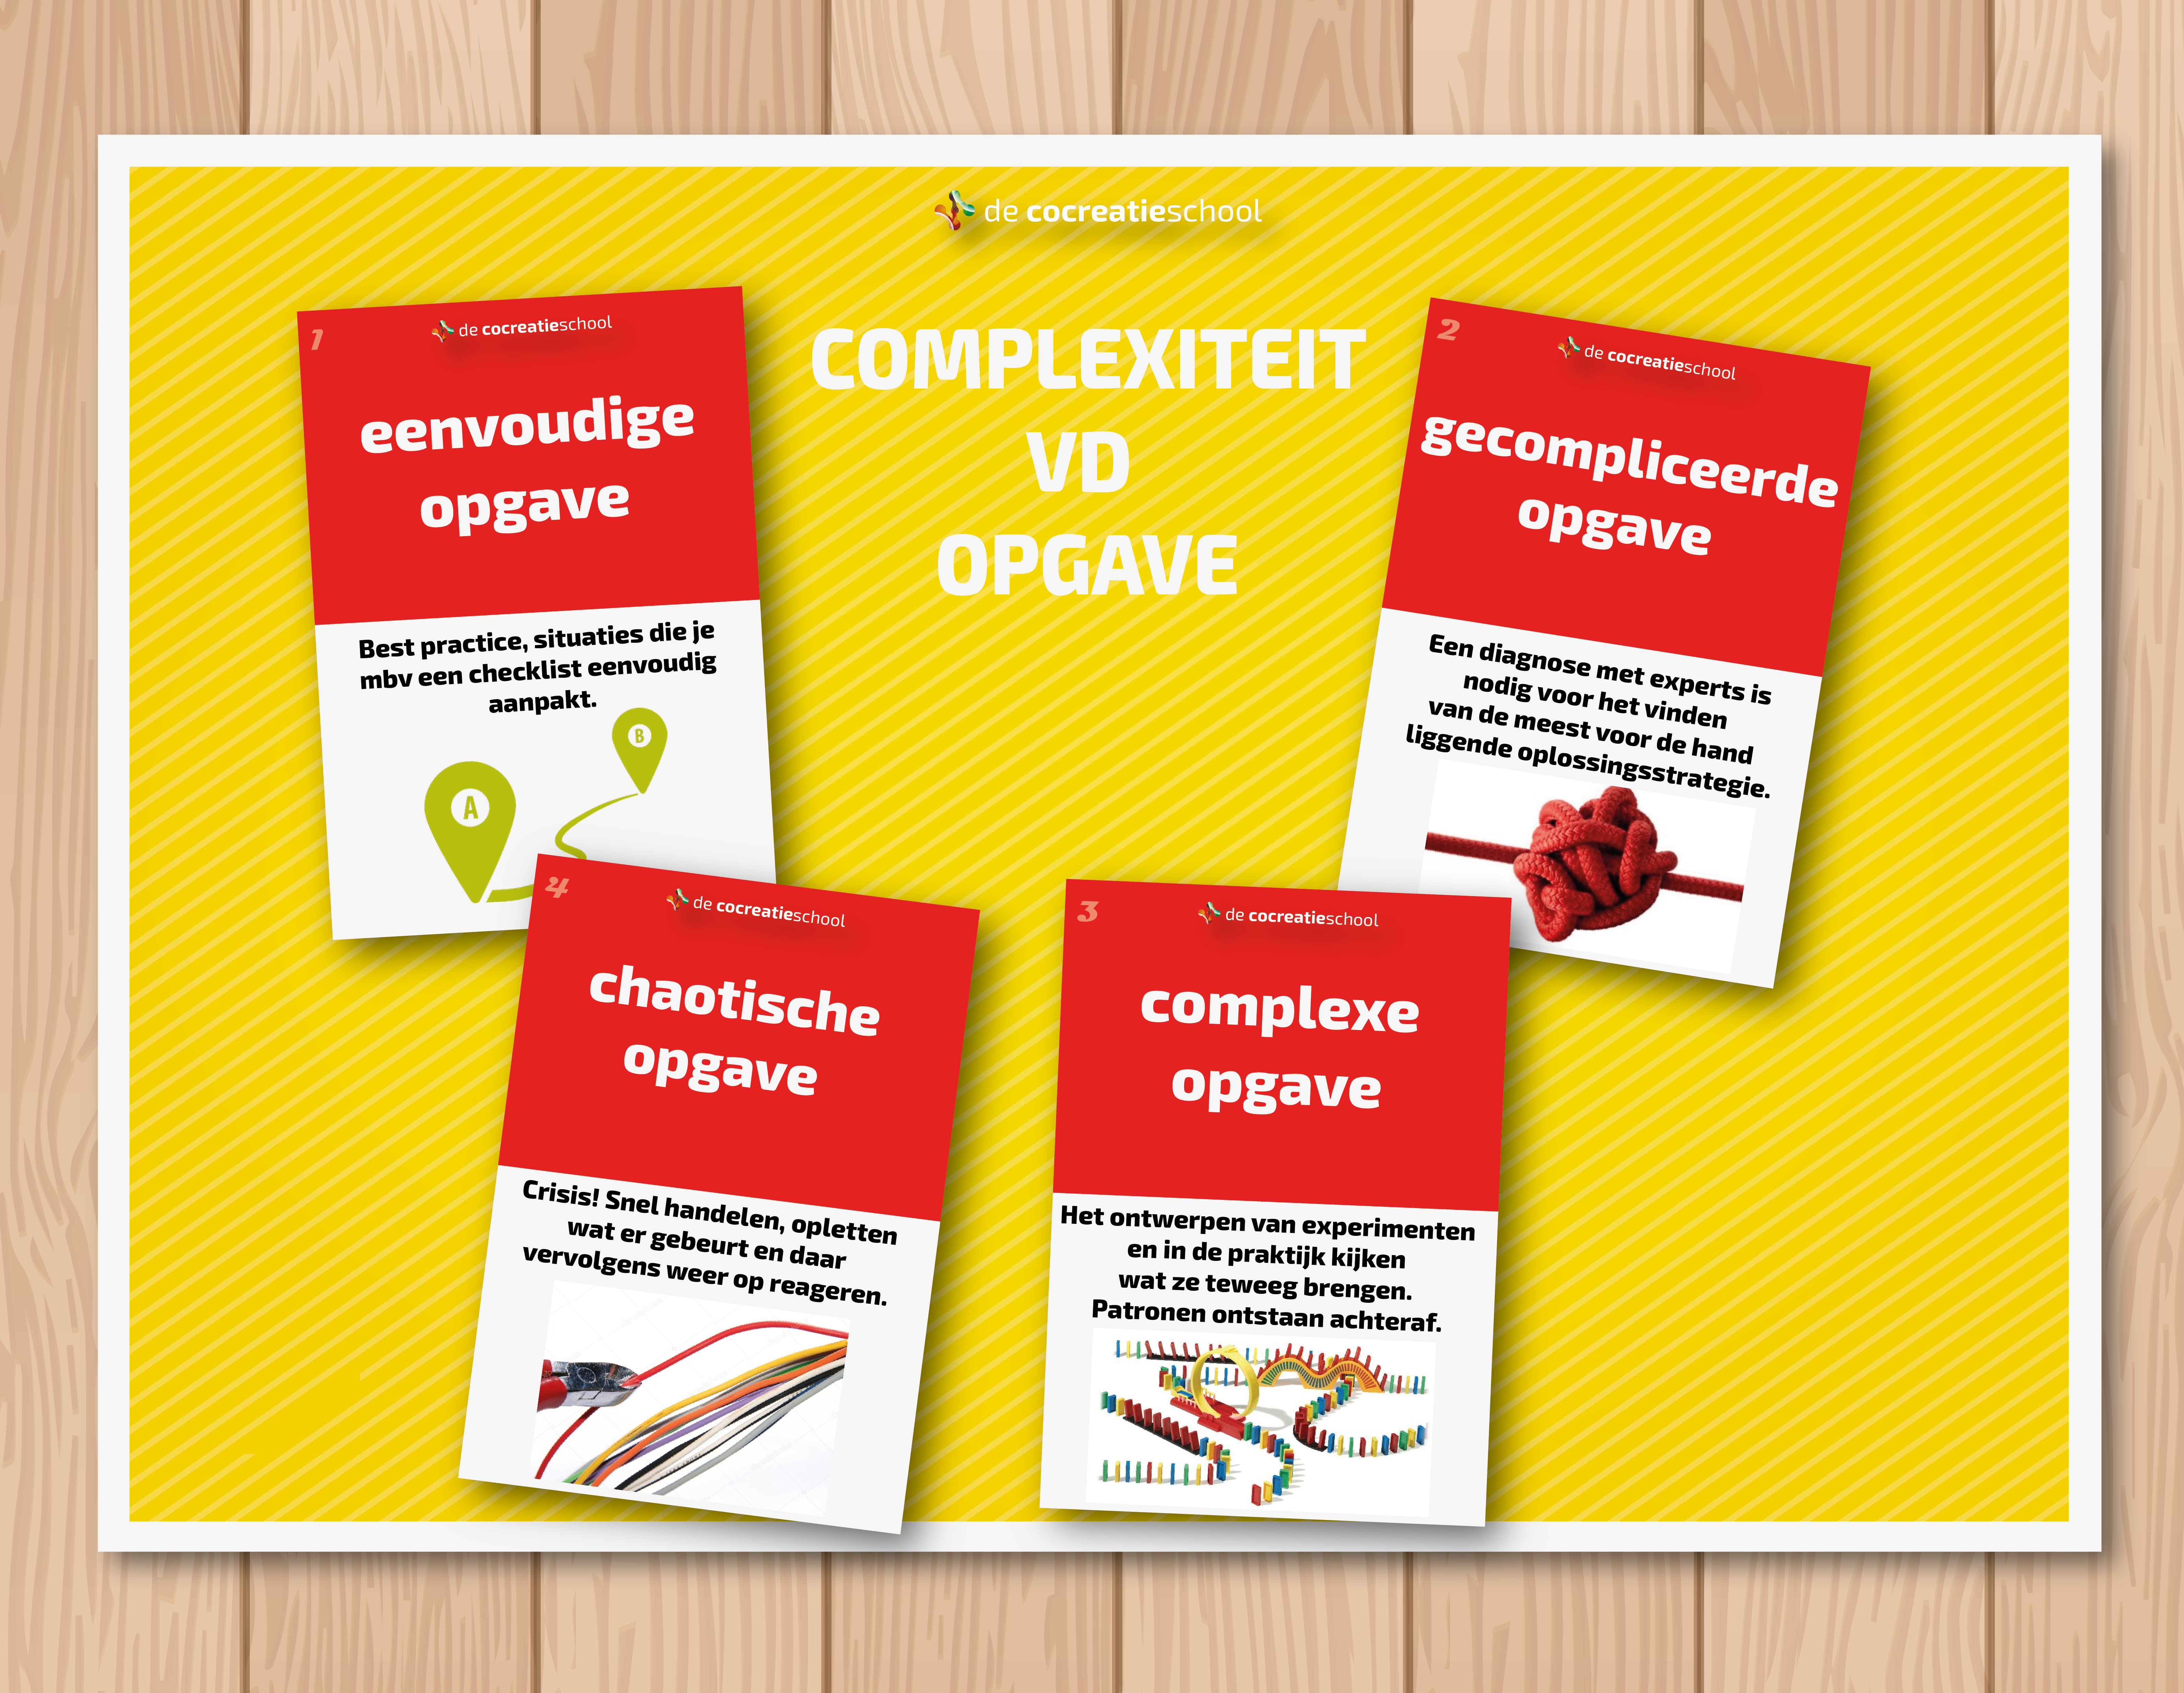 Complexiteit vd opgave